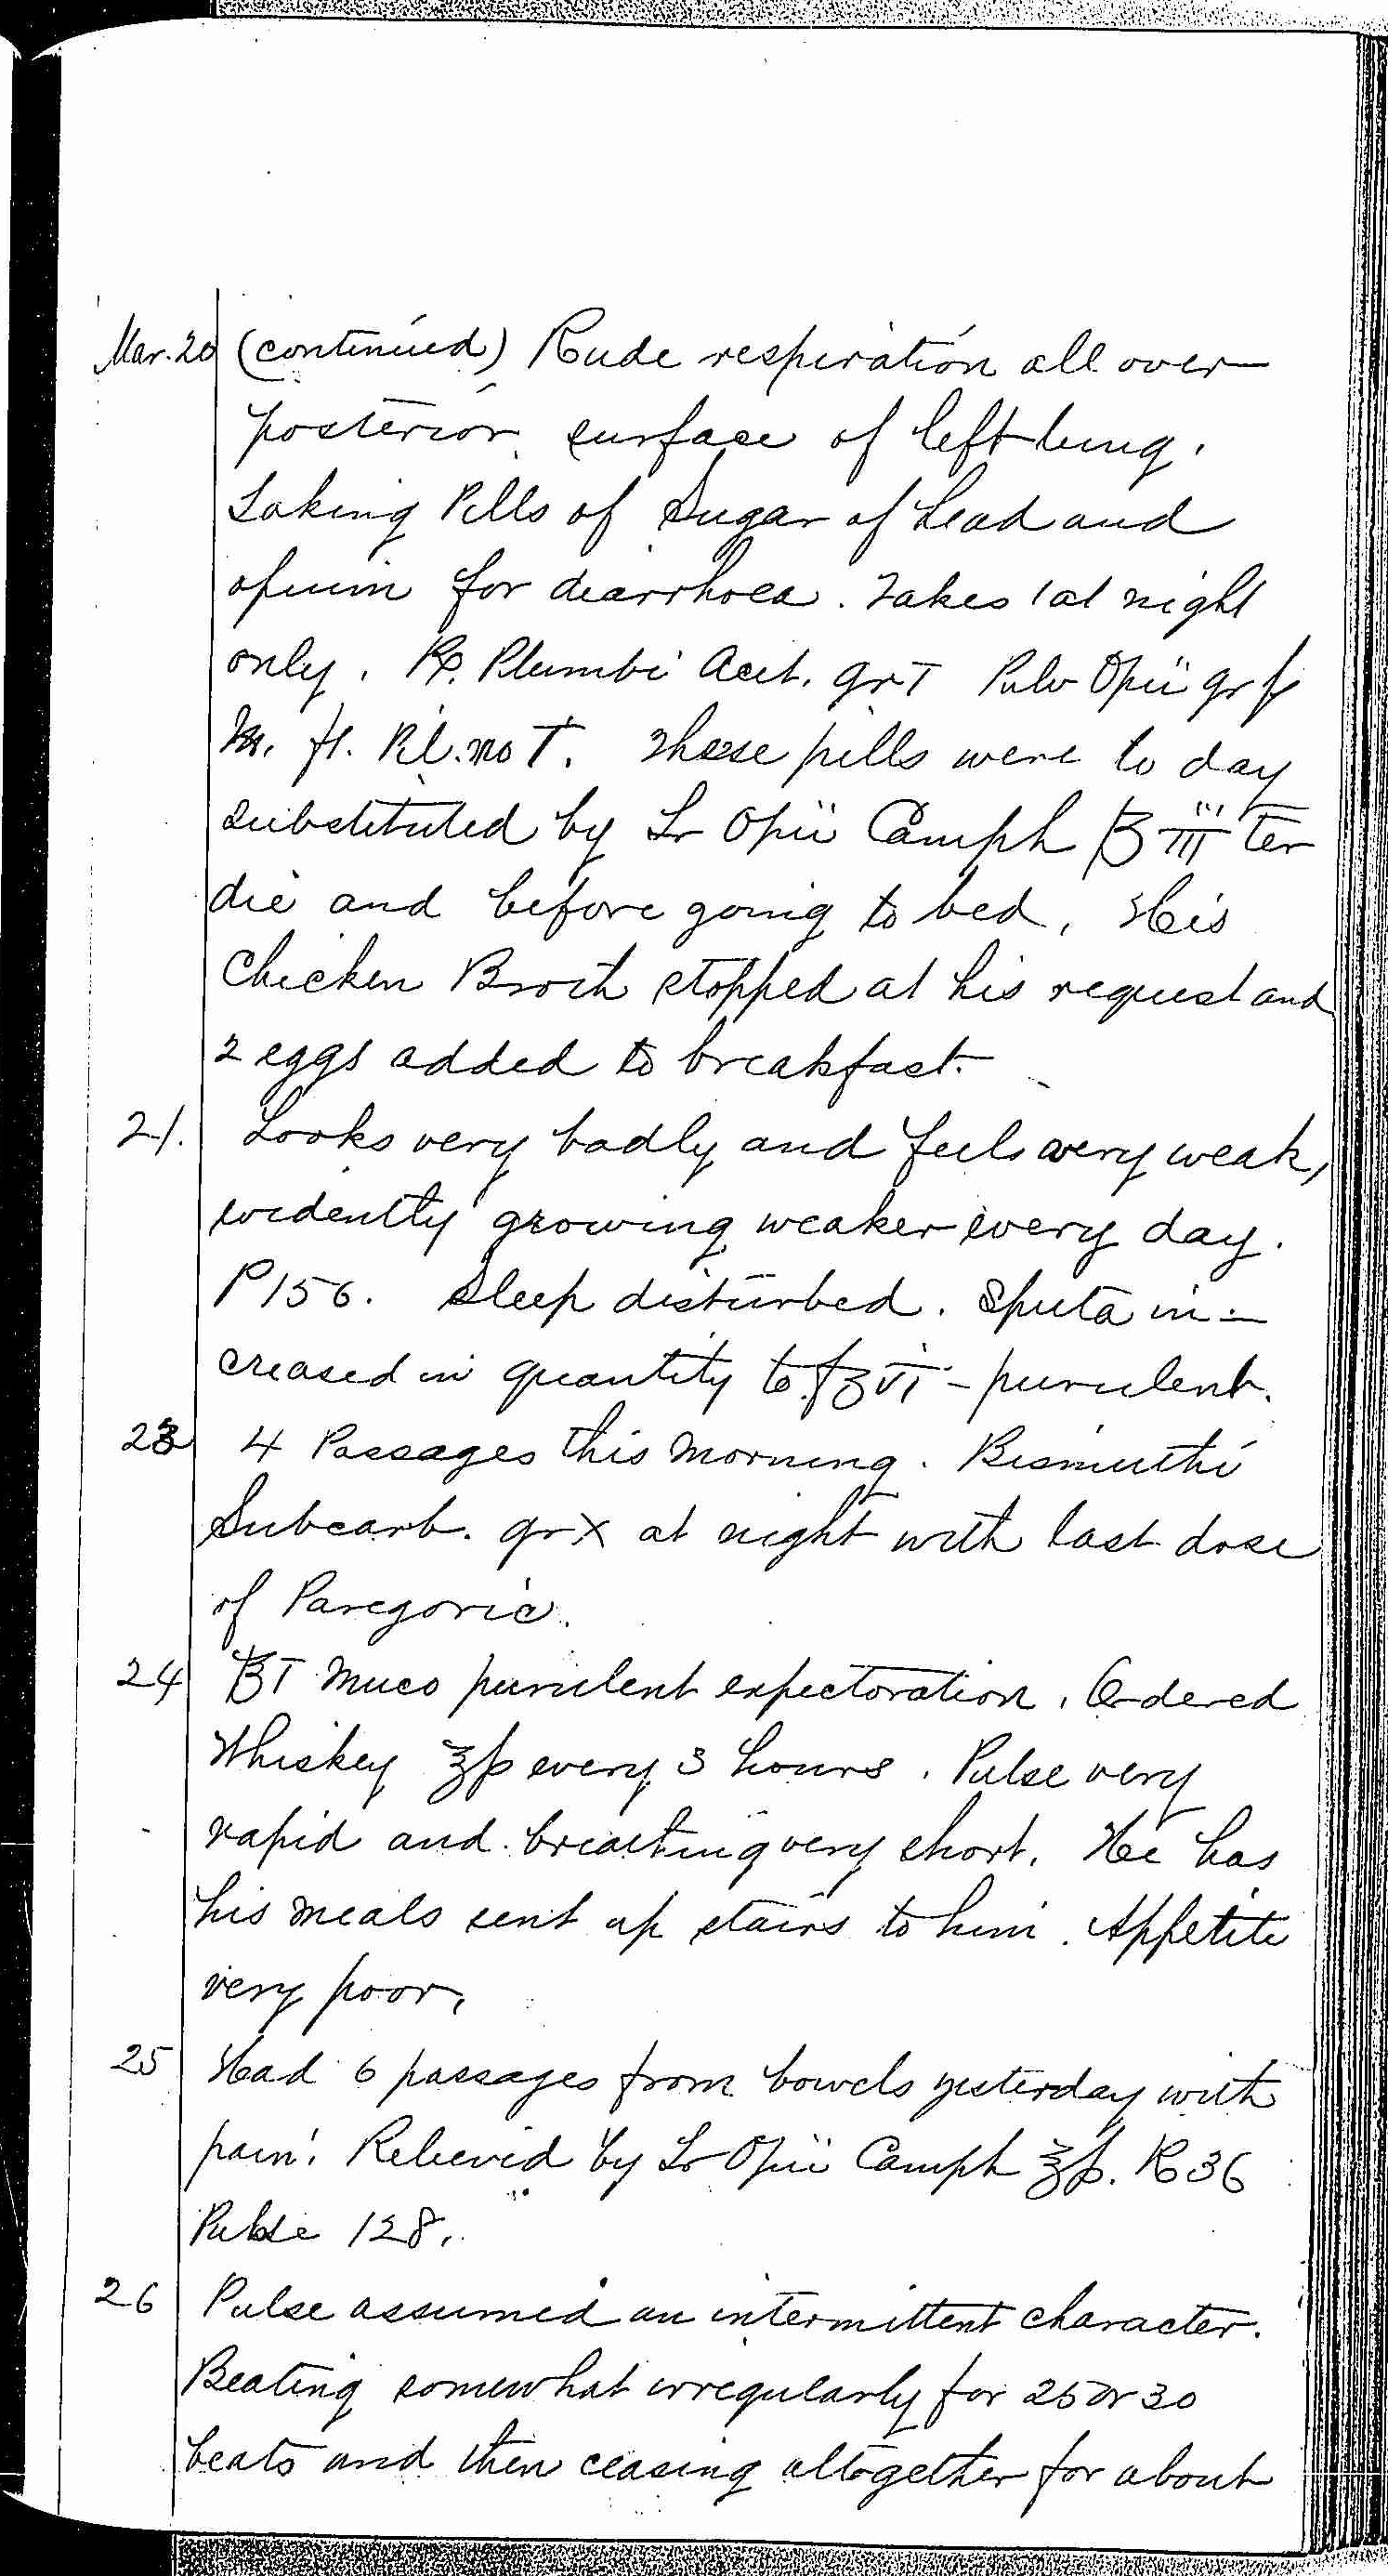 Entry for William Bathwell (page 11 of 13) in the log Hospital Tickets and Case Papers - Naval Hospital - Washington, D.C. - 1868-69